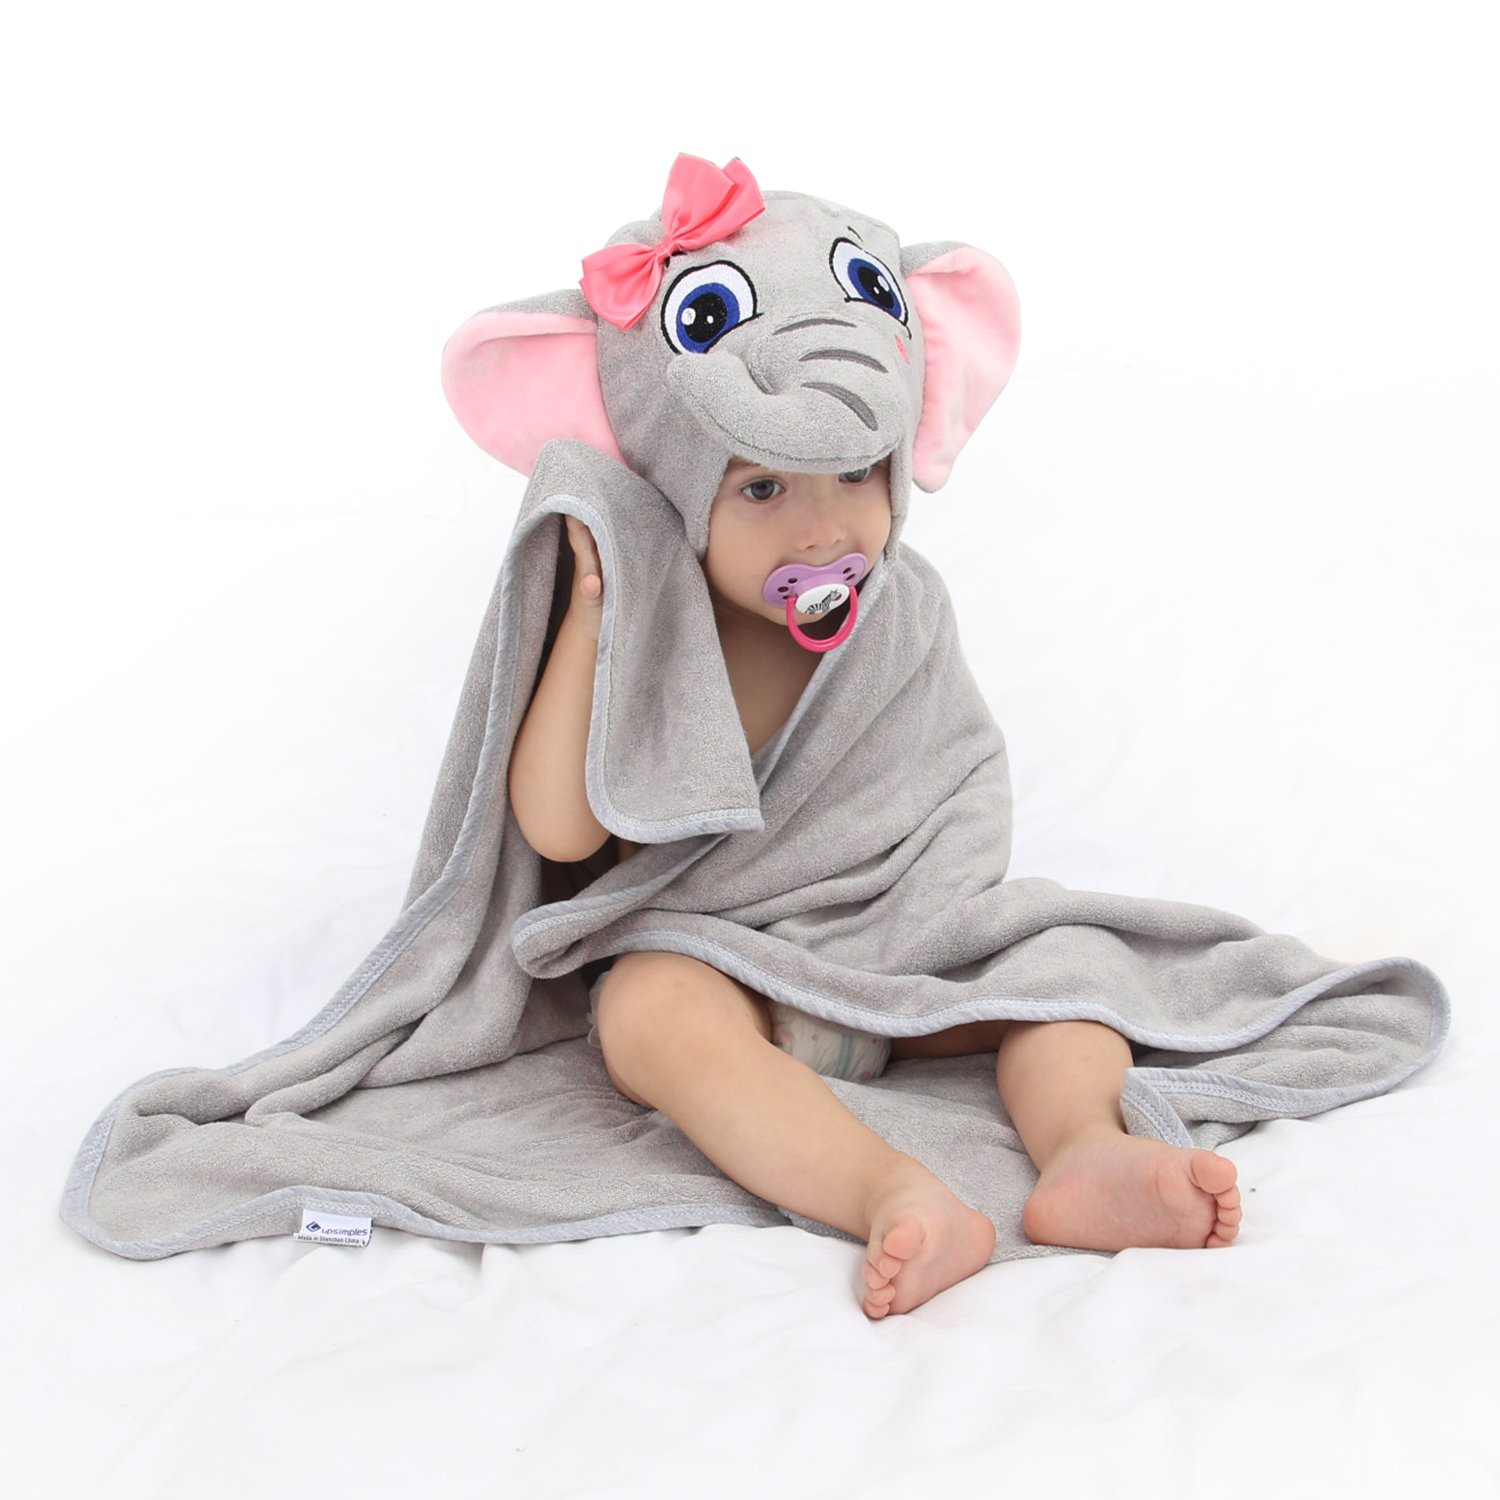 Baby Hooded Towel Upsimples Elephant Baby Towels for Baby Girls 35×35 inches Ultra Large 500GSM Super Soft Organic Bamboo Baby Bath Towel for Infant Toddler | Baby Girl Shower Gift Photo Shoot Props